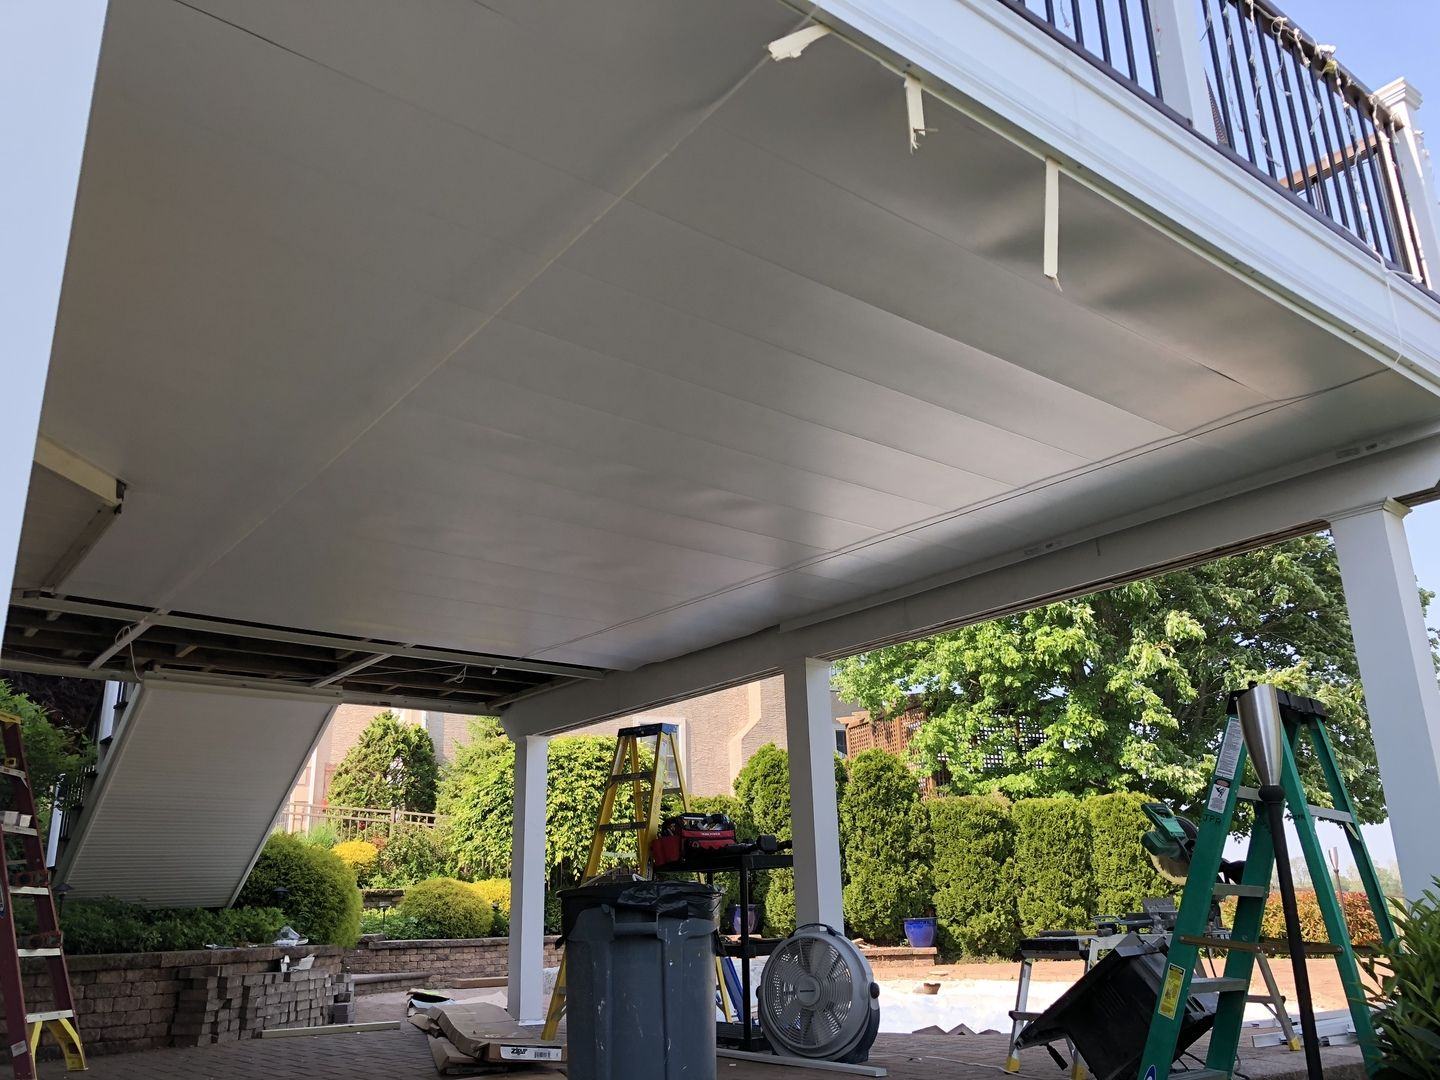 Underdeck Panel By Zip Up Building A Deck Deck Ceiling Ideas Under Deck Ceiling